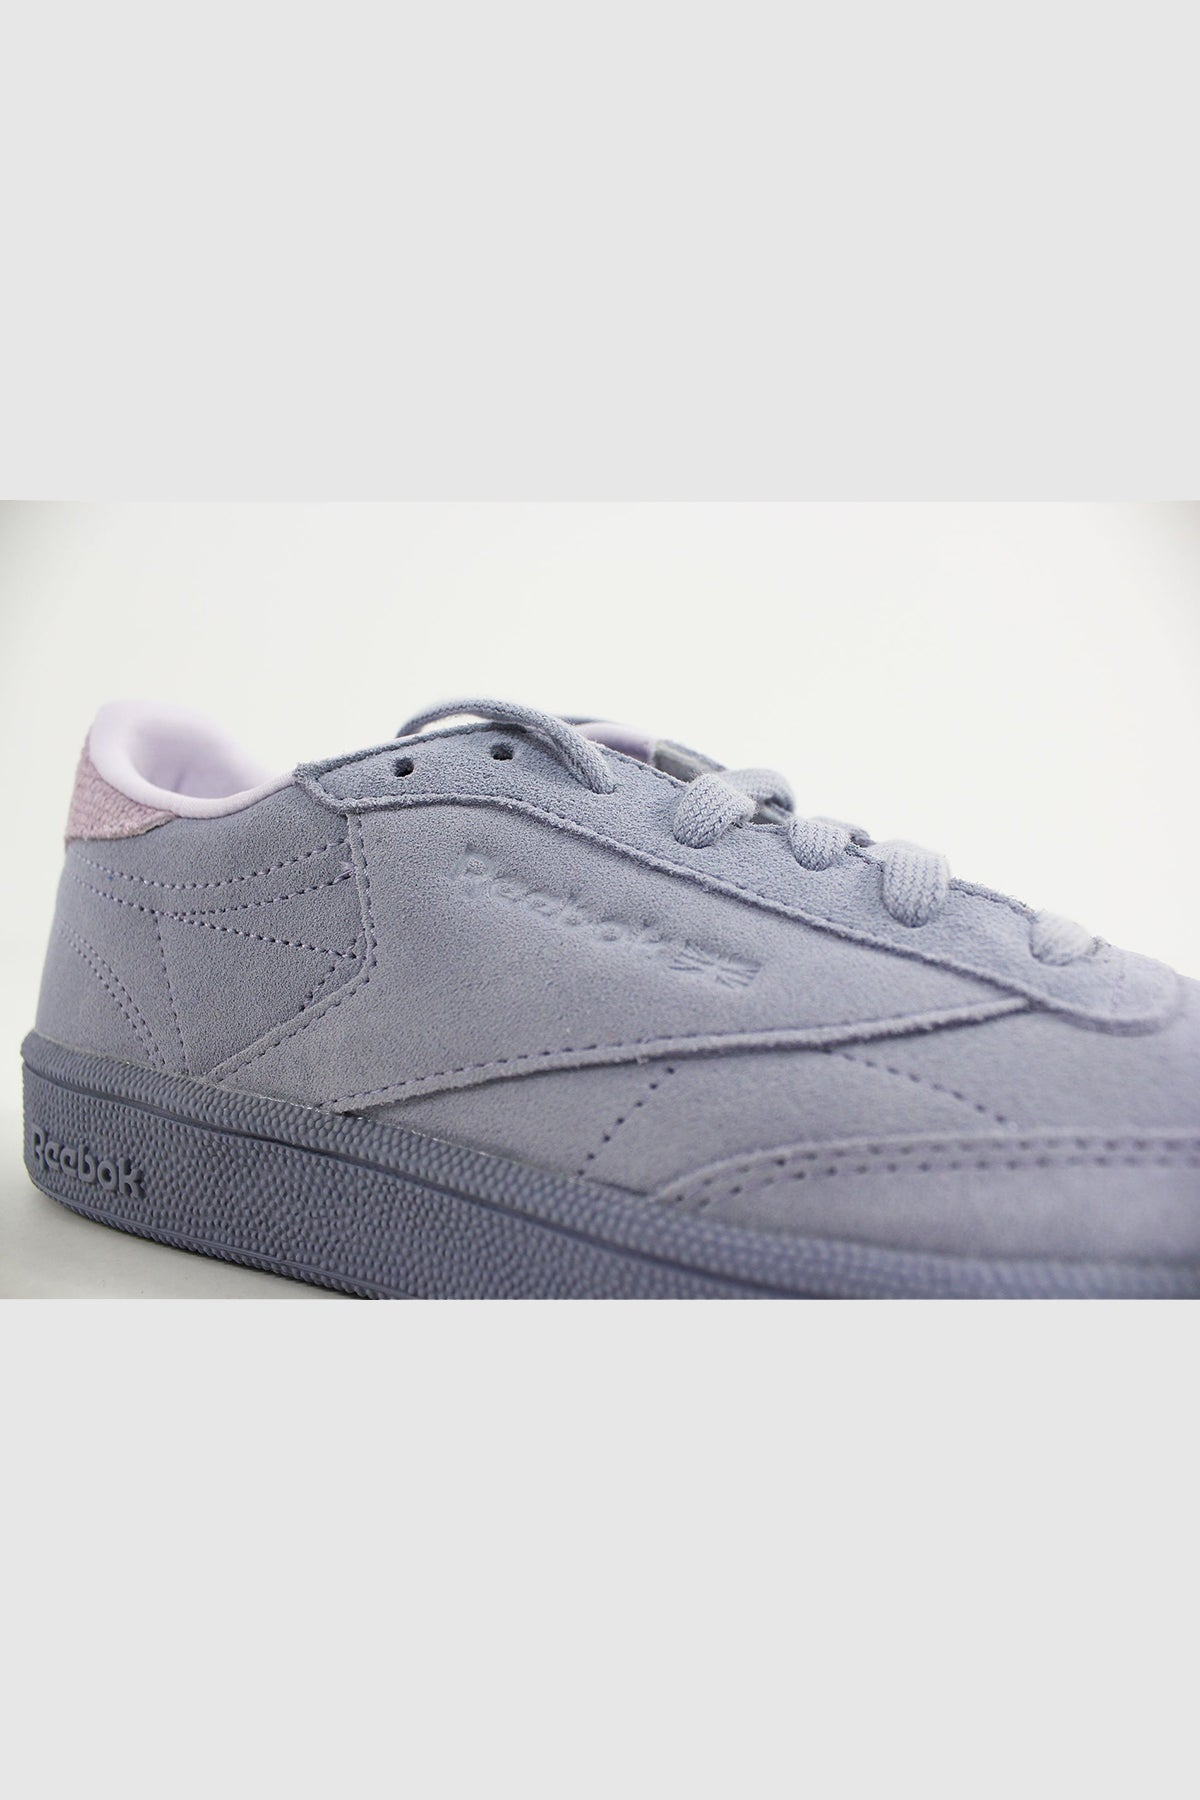 Reebok - Club C 85 NBK Women (Purple Fog/ Quartz) CM9055